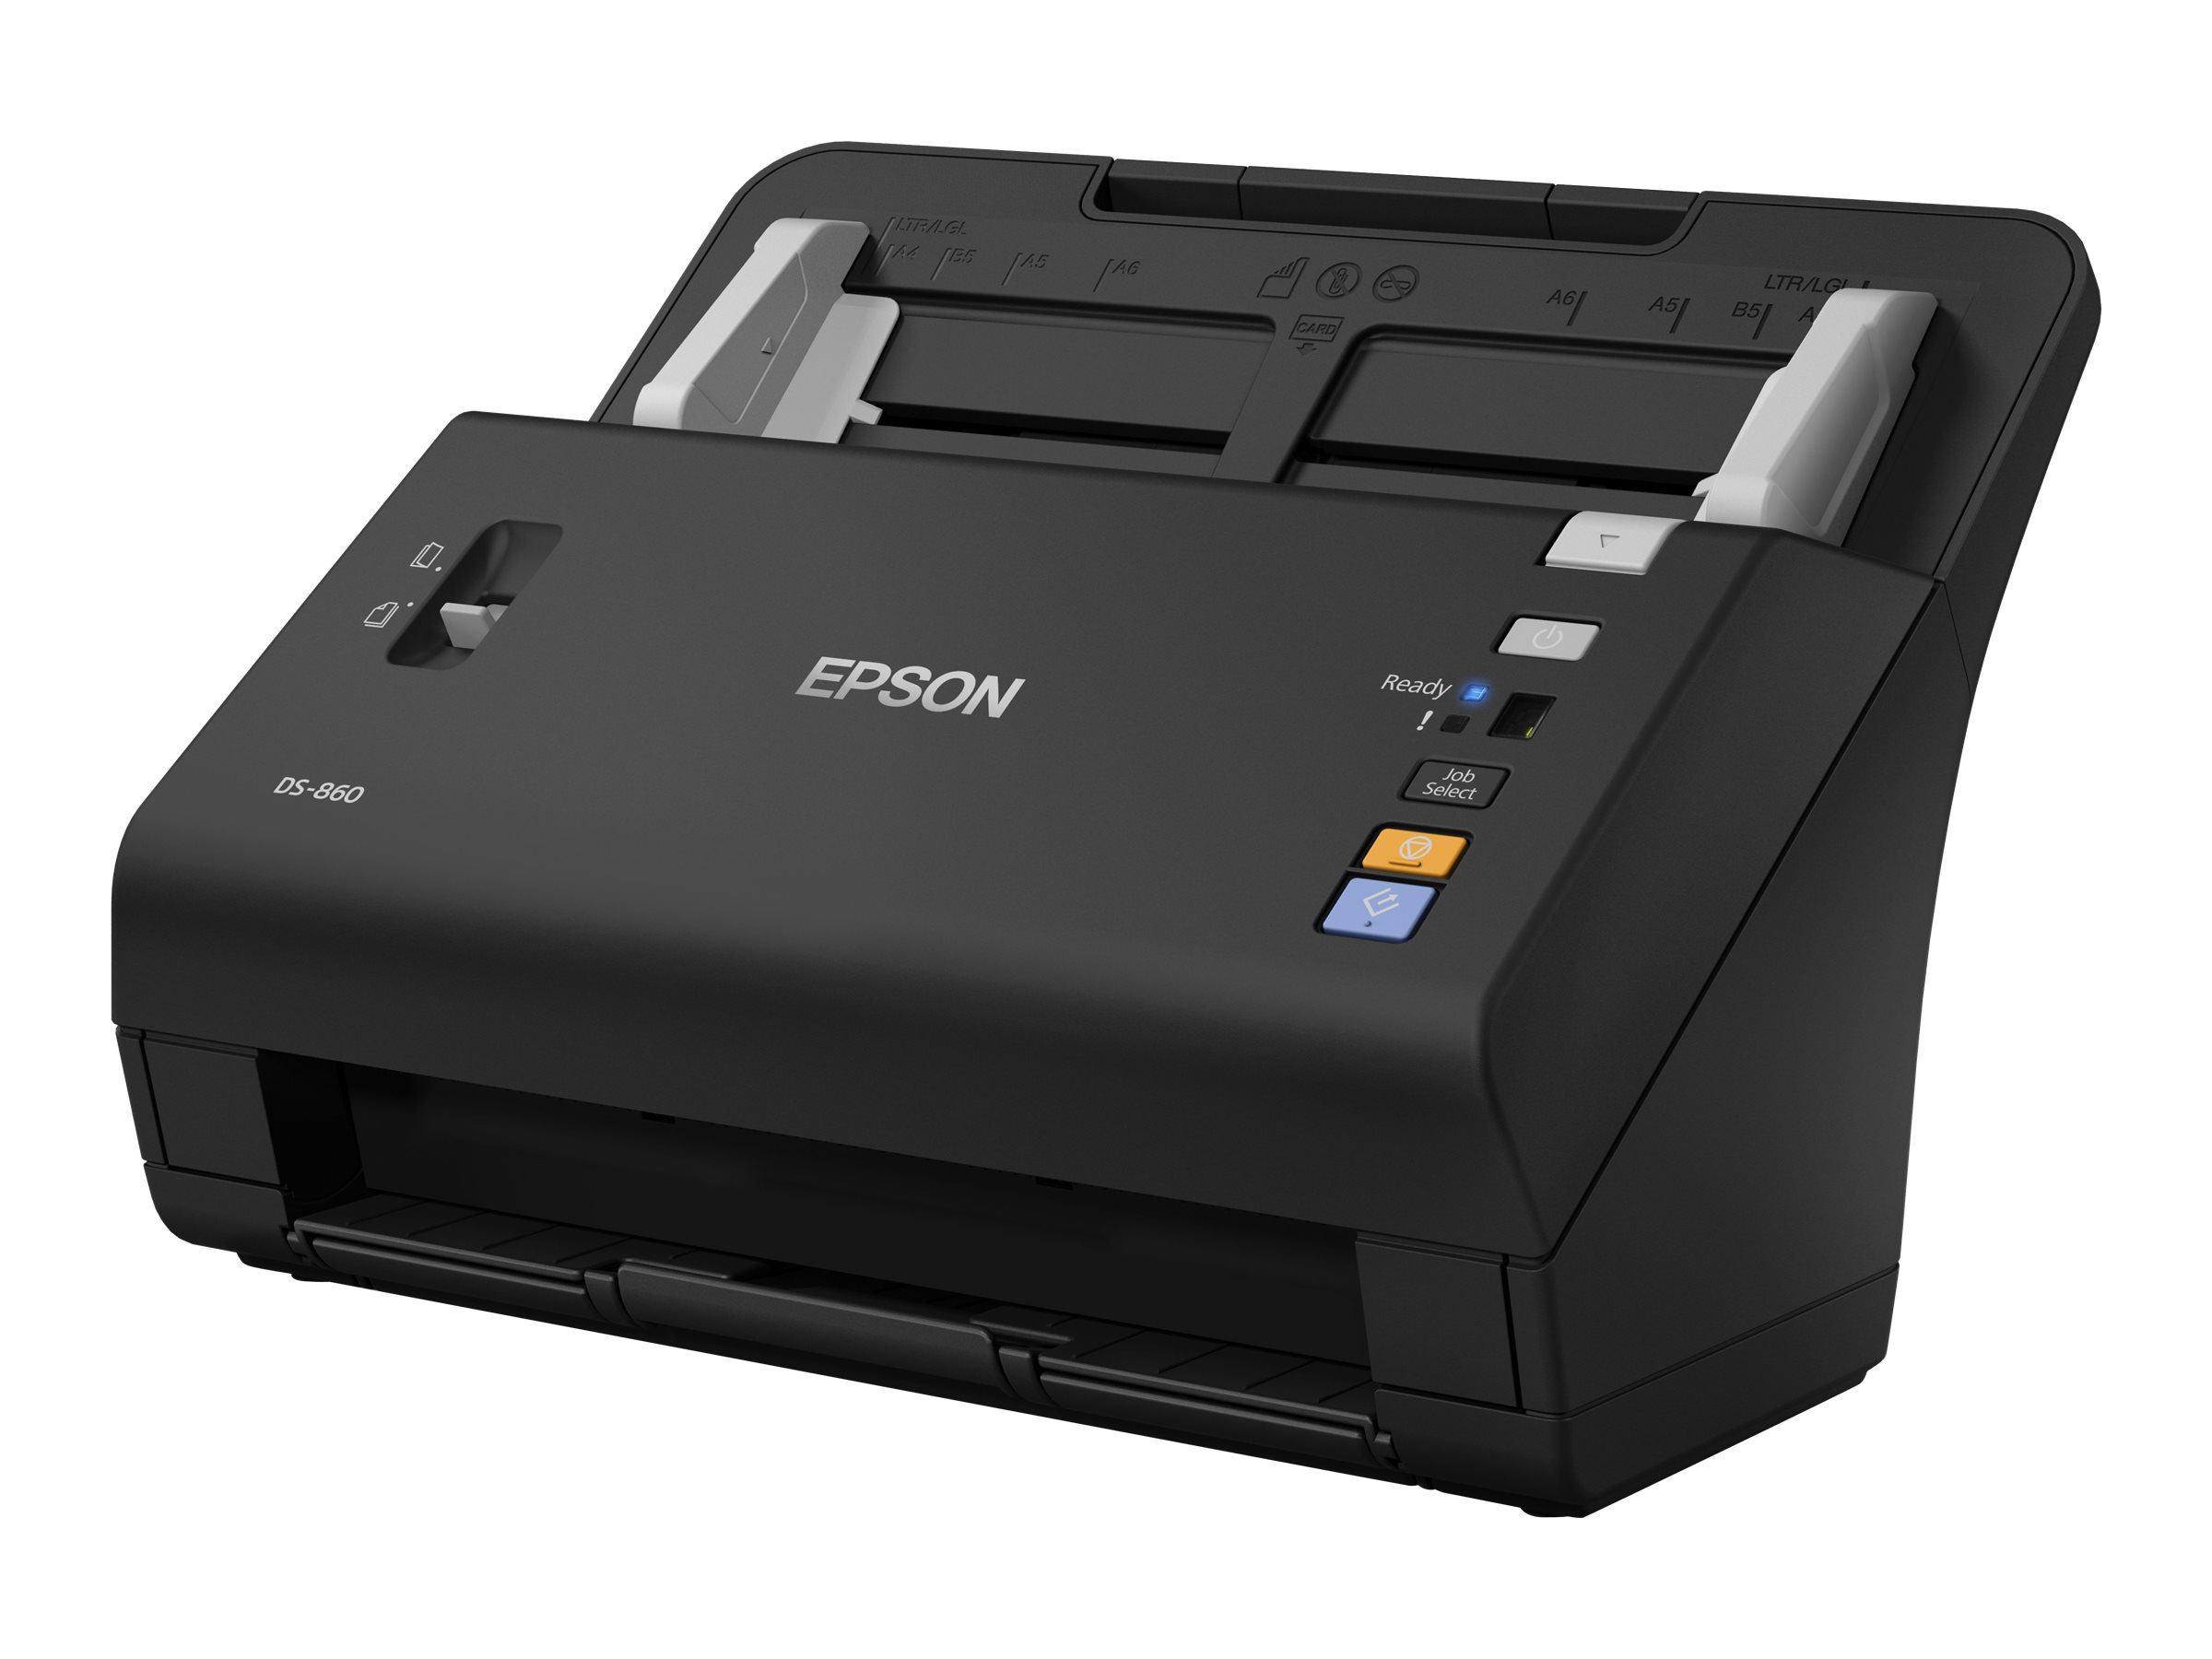 Vorschau: Epson WorkForce DS-860 - Dokumentenscanner